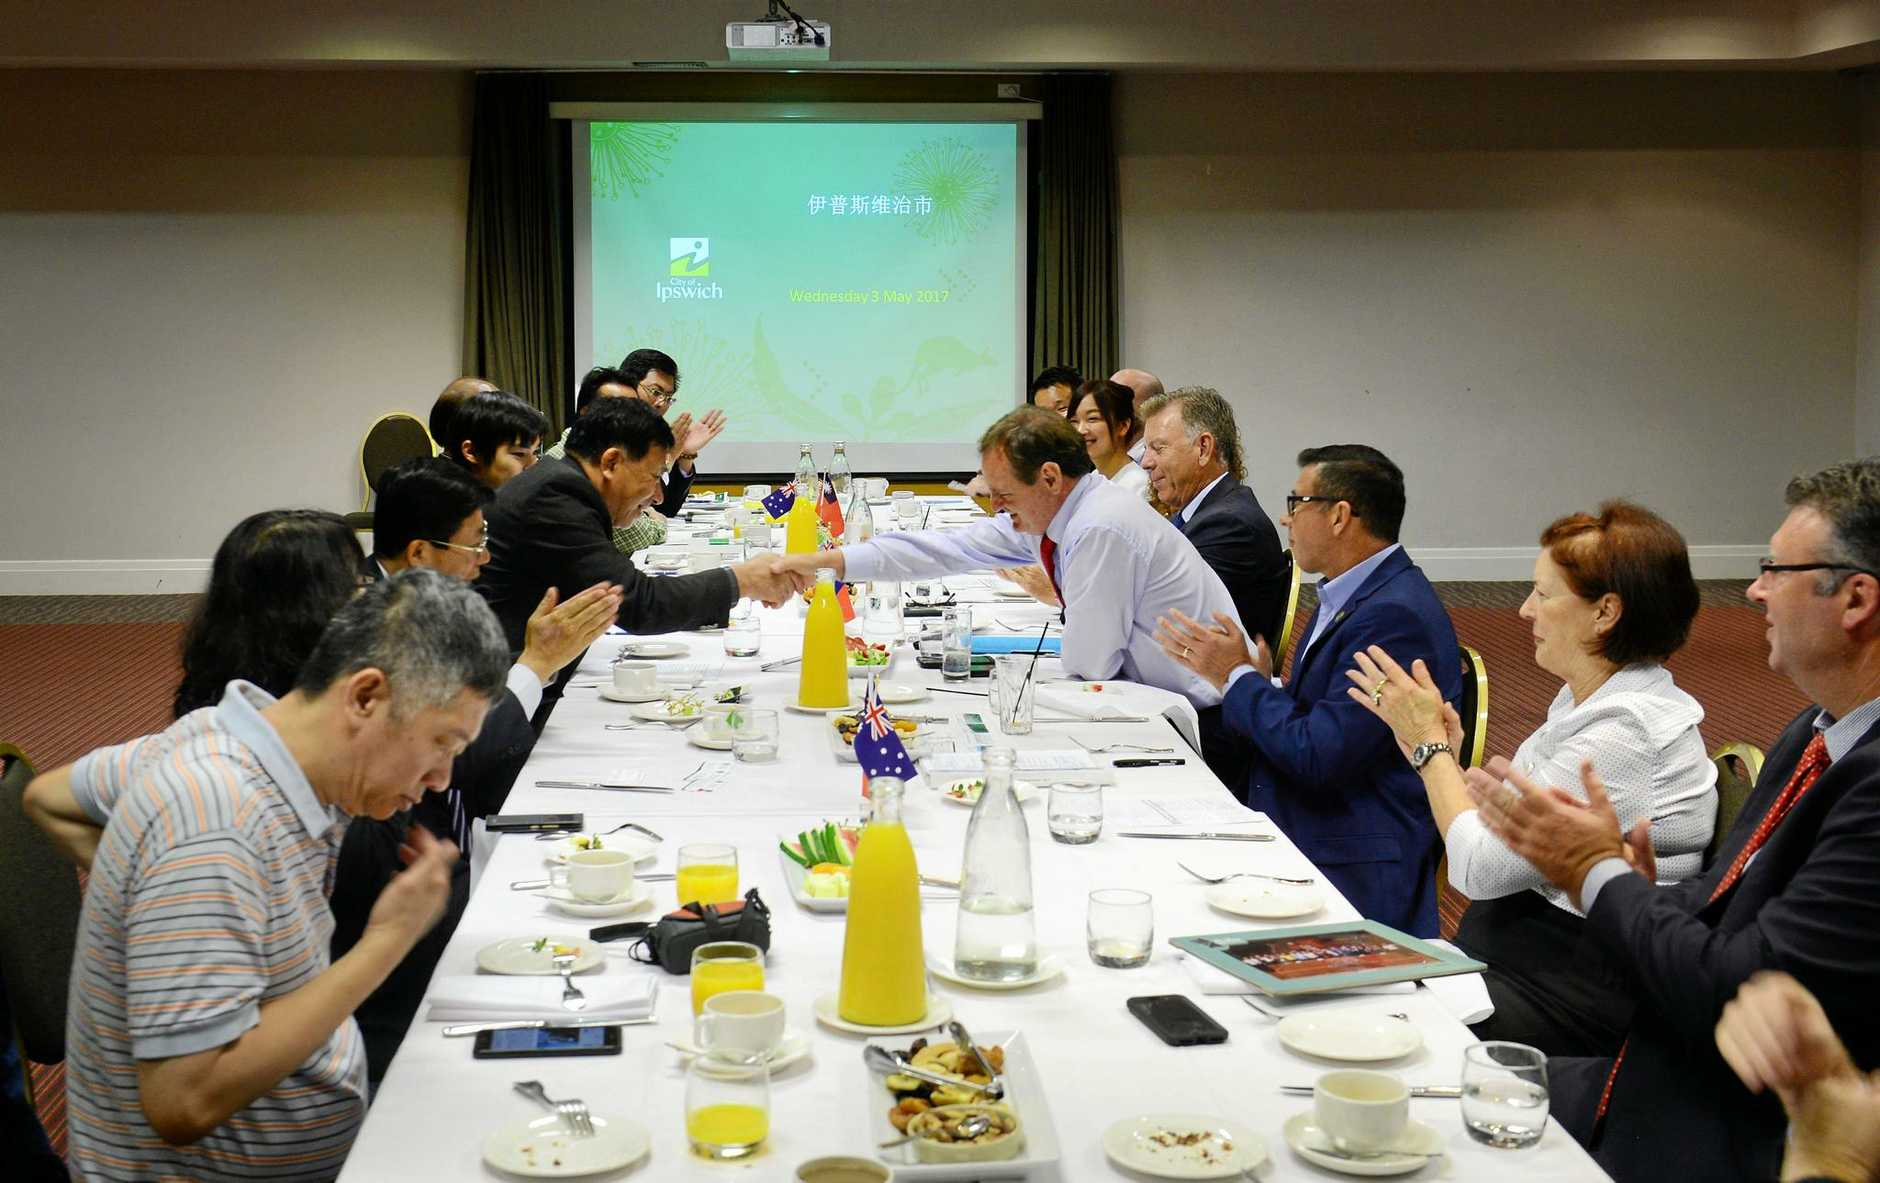 Nantou County delegates from Taiwan enjoyed lunch with Ipswich councillors at Metro Hotel International.